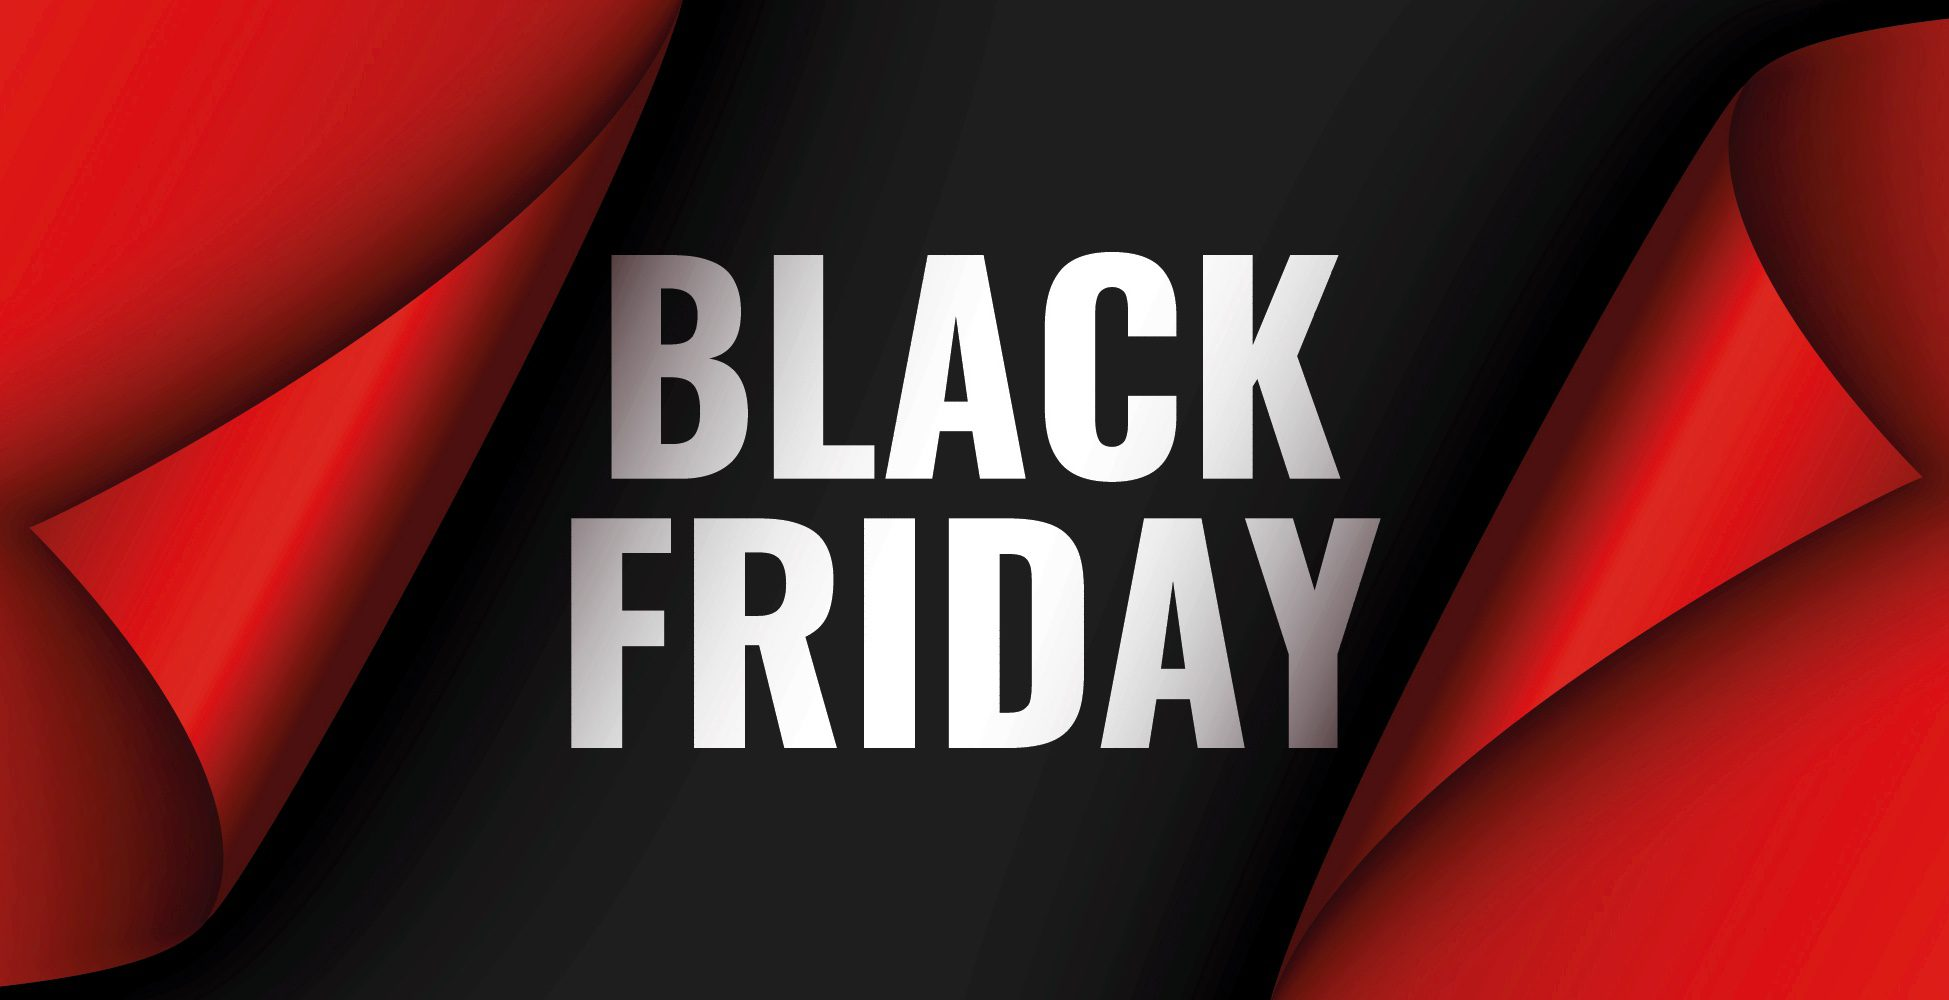 Alle Black Friday Deals 2020 Für Studio Software Plugins Und Audio Tools Amazona De